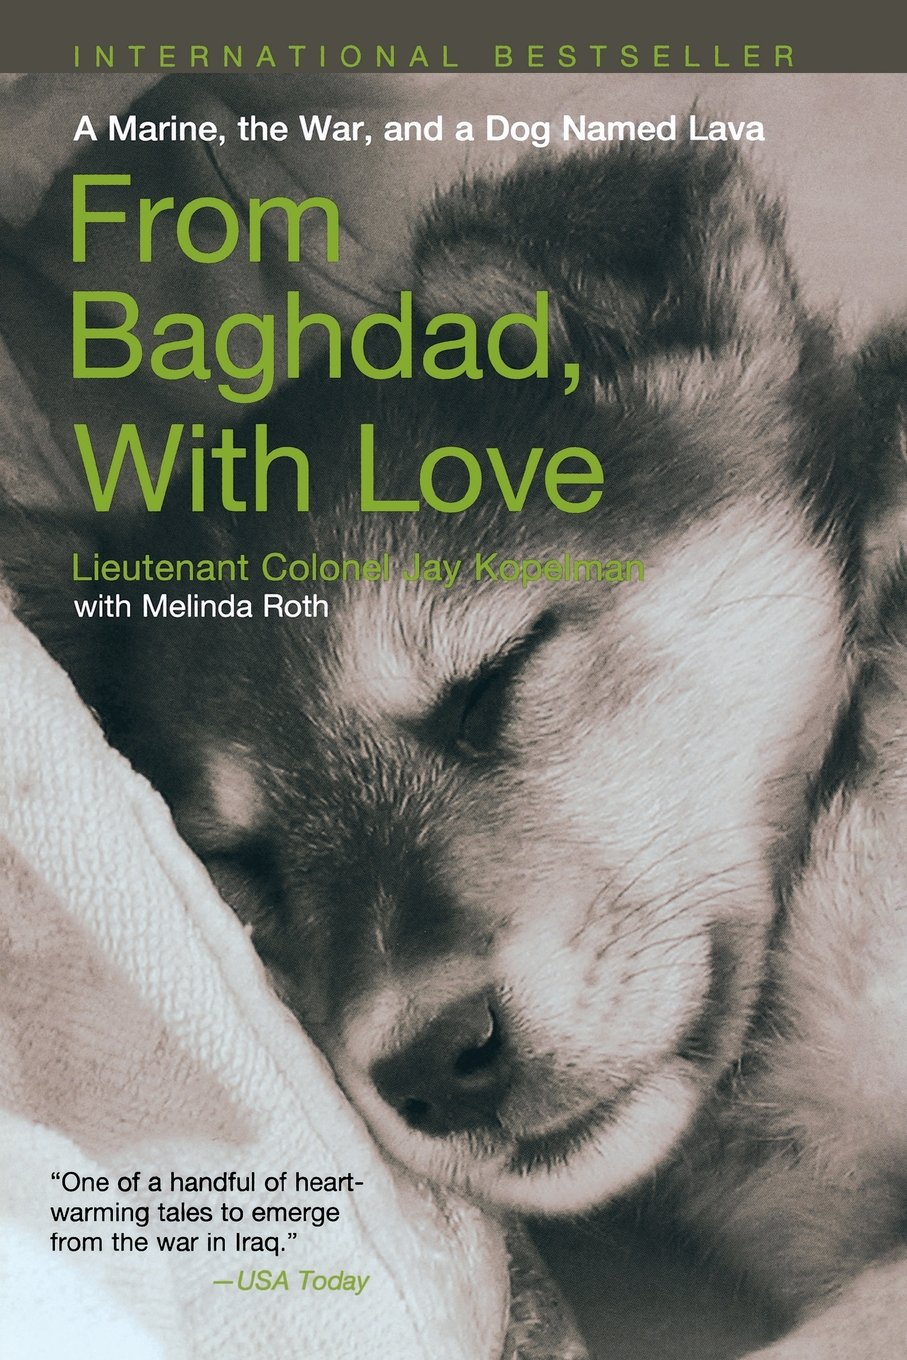 From Baghdad with Love: A Marine, the War, and a Dog Named